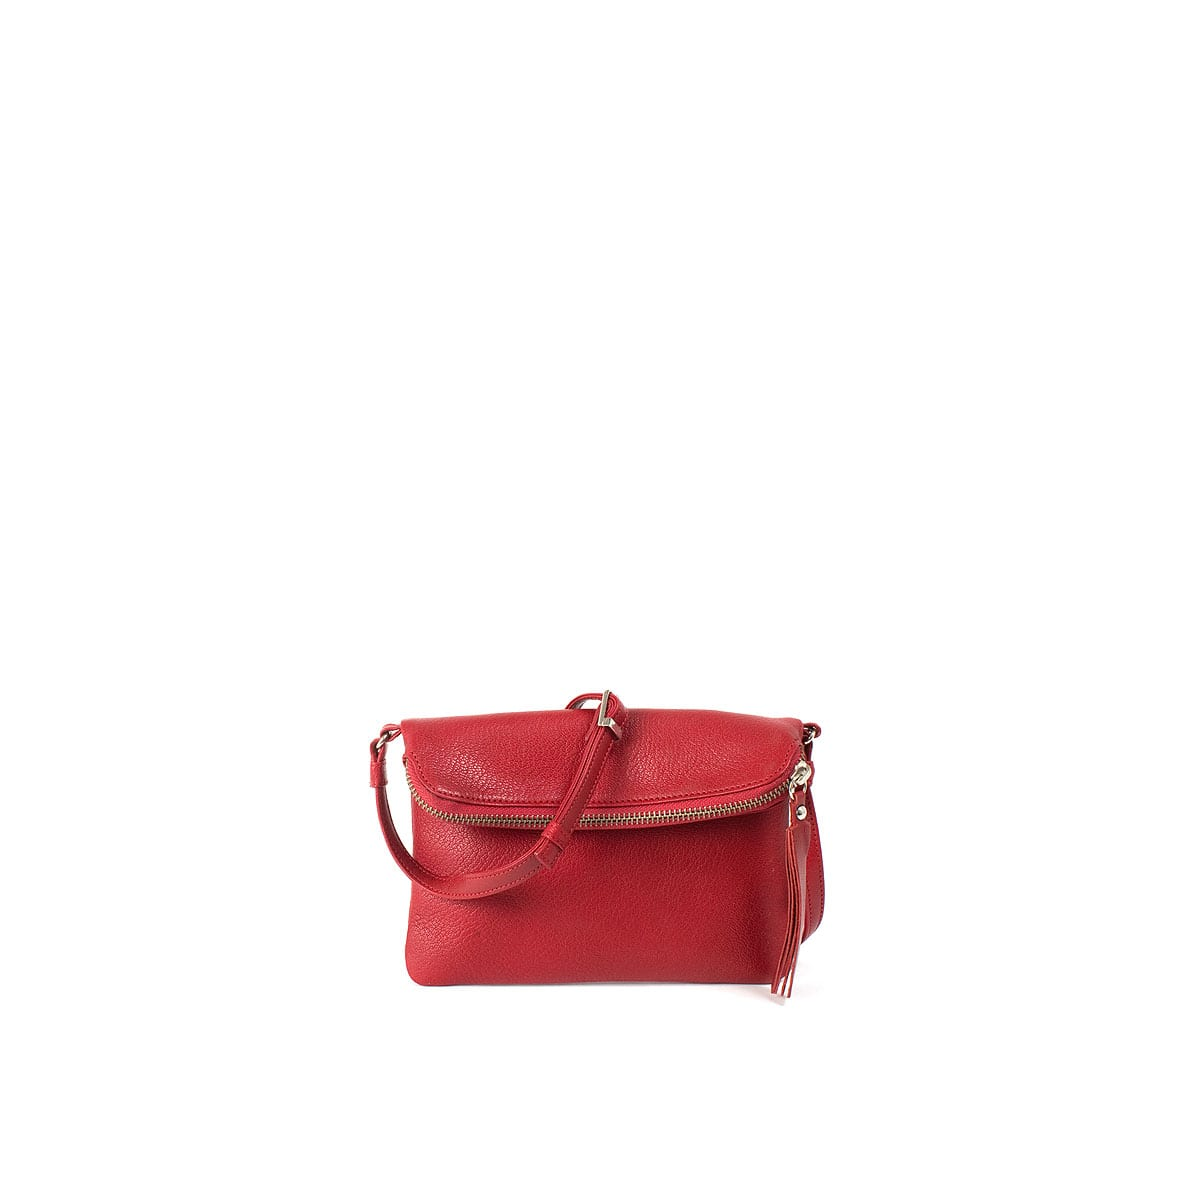 LUMI Stella Pouch Bag, in red, is made of vegetable tanned goat leather